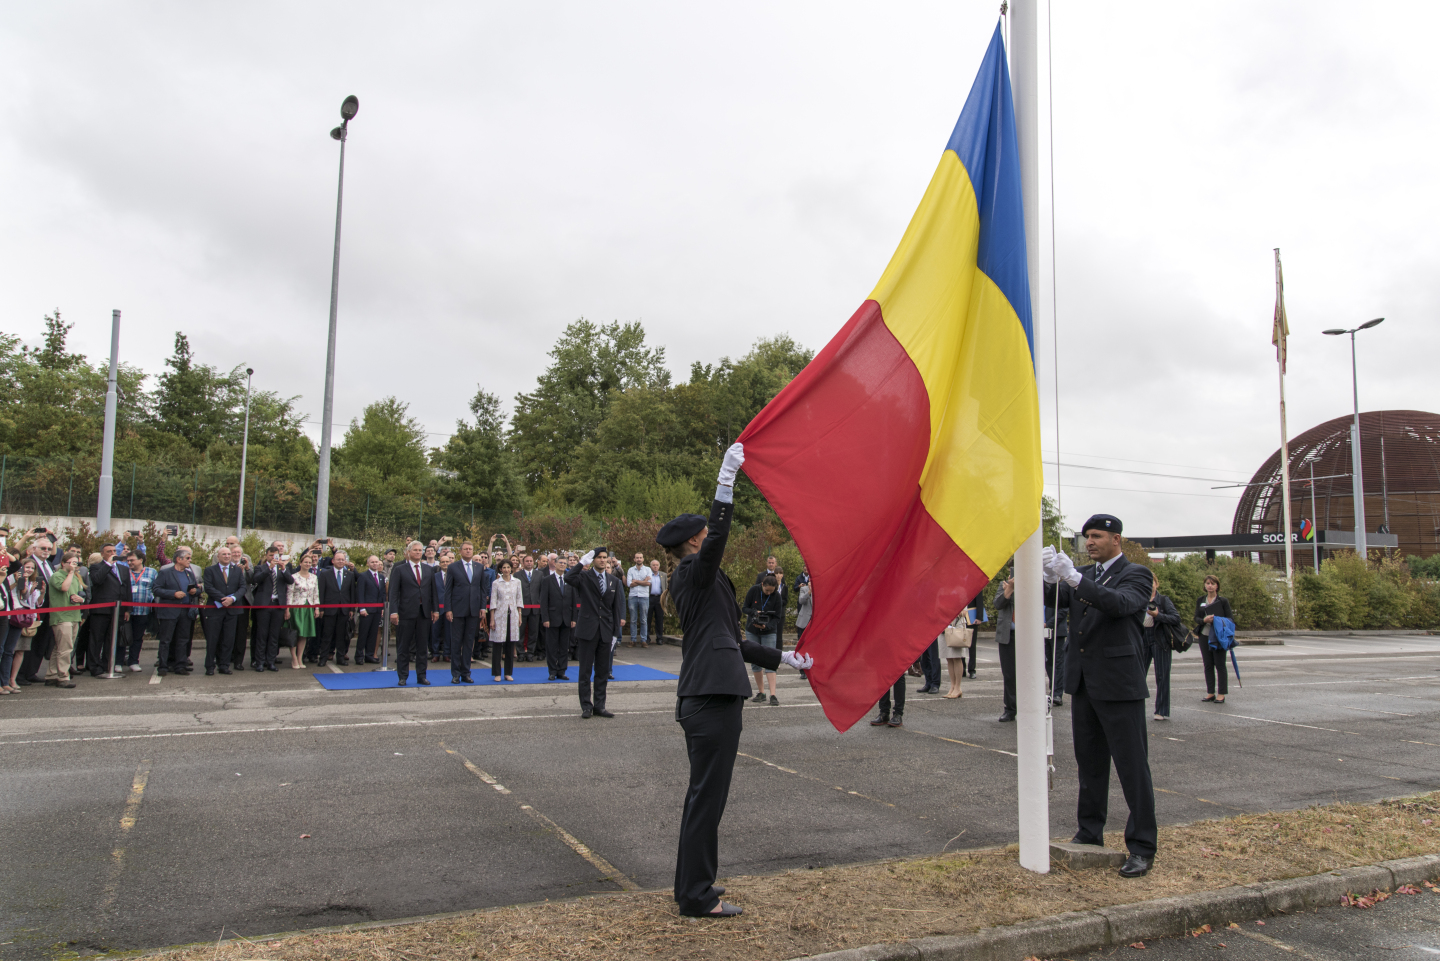 His Excellency Mr Klaus Werner Iohannis President of Romania on the occasion of the flag-raising ceremony to mark the accession of Romania as a Member State of CERN